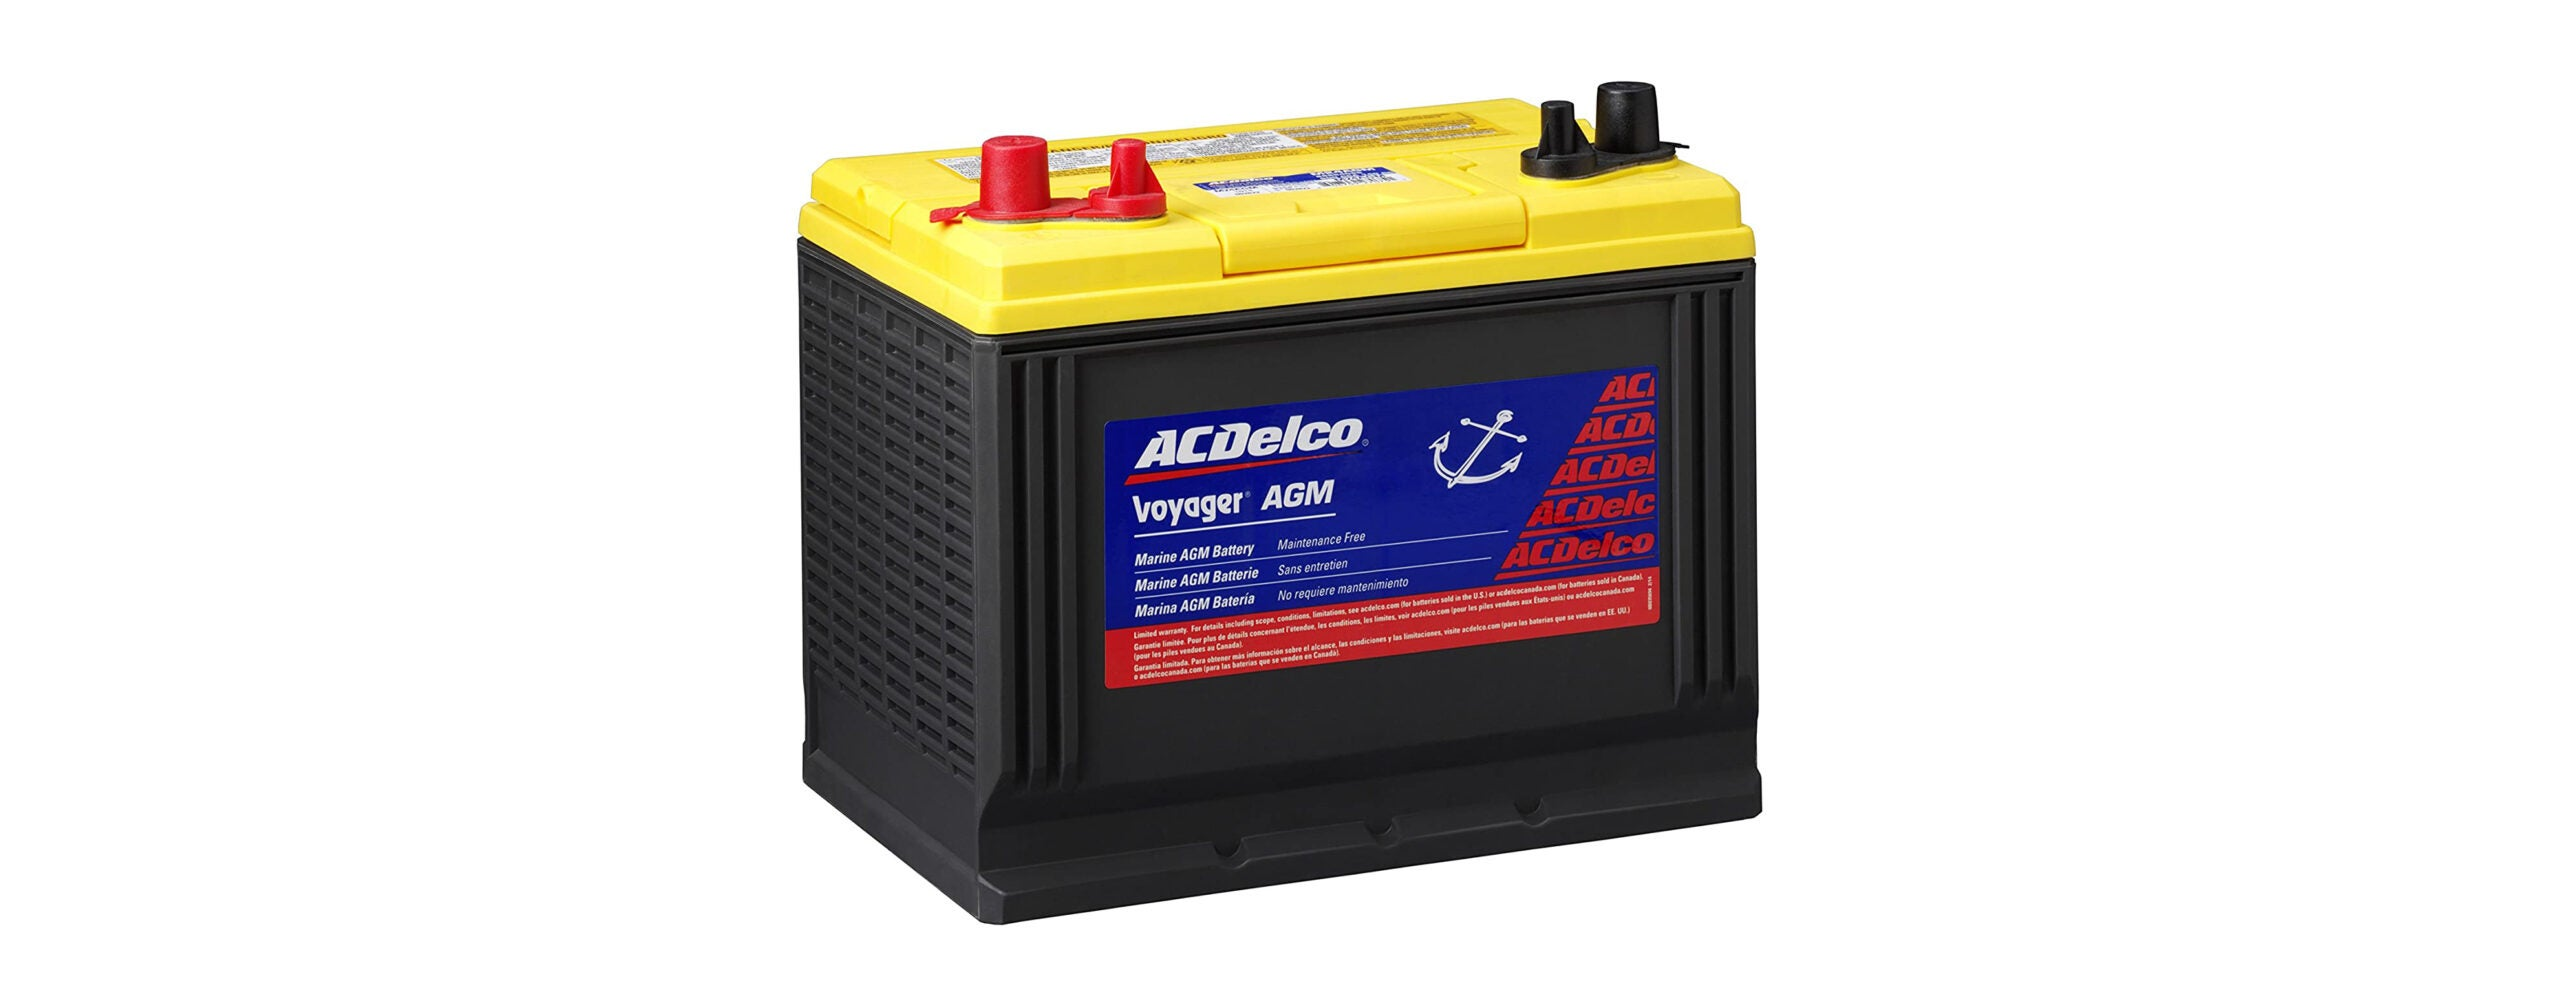 The Best Car Battery (Review & Buying Guide) in 2021